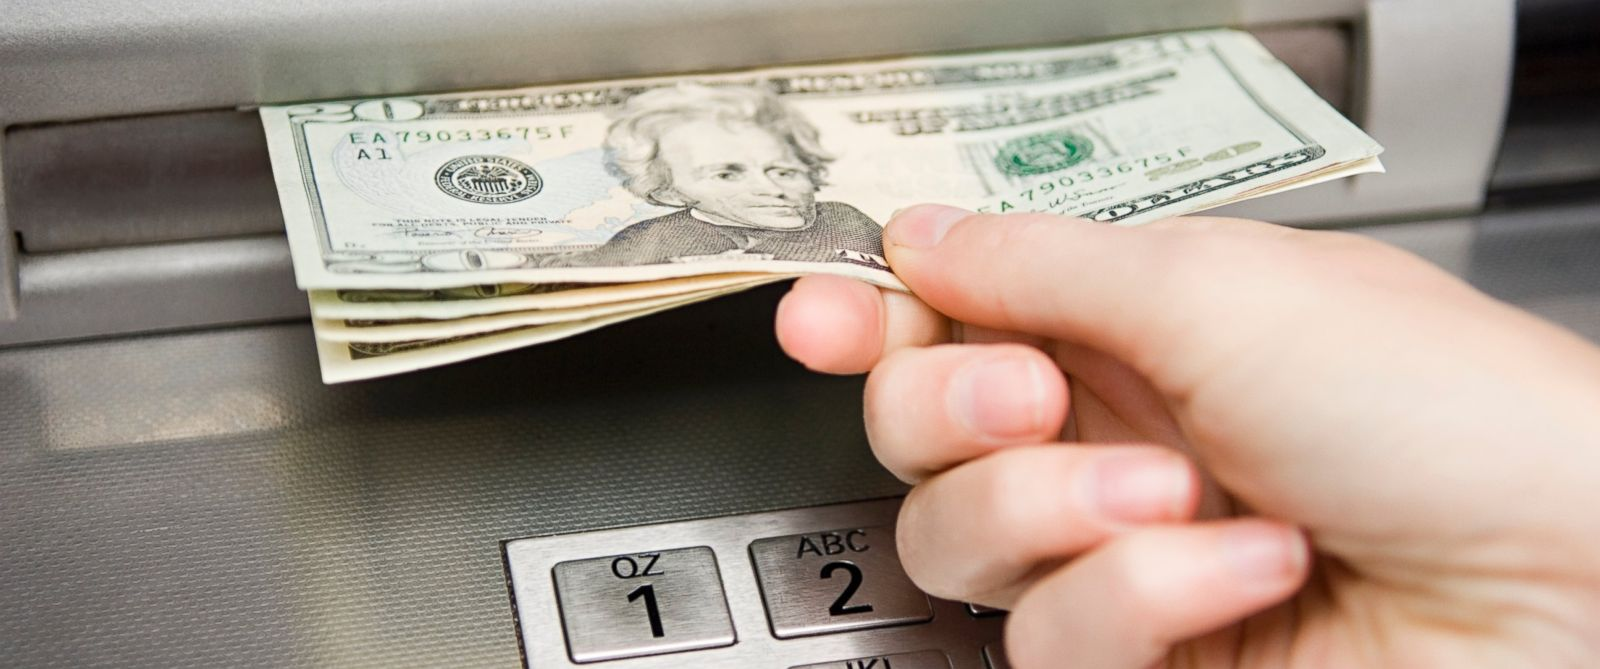 PHOTO: In this stock image, a person is seen withdrawing cash from an ATM machine.